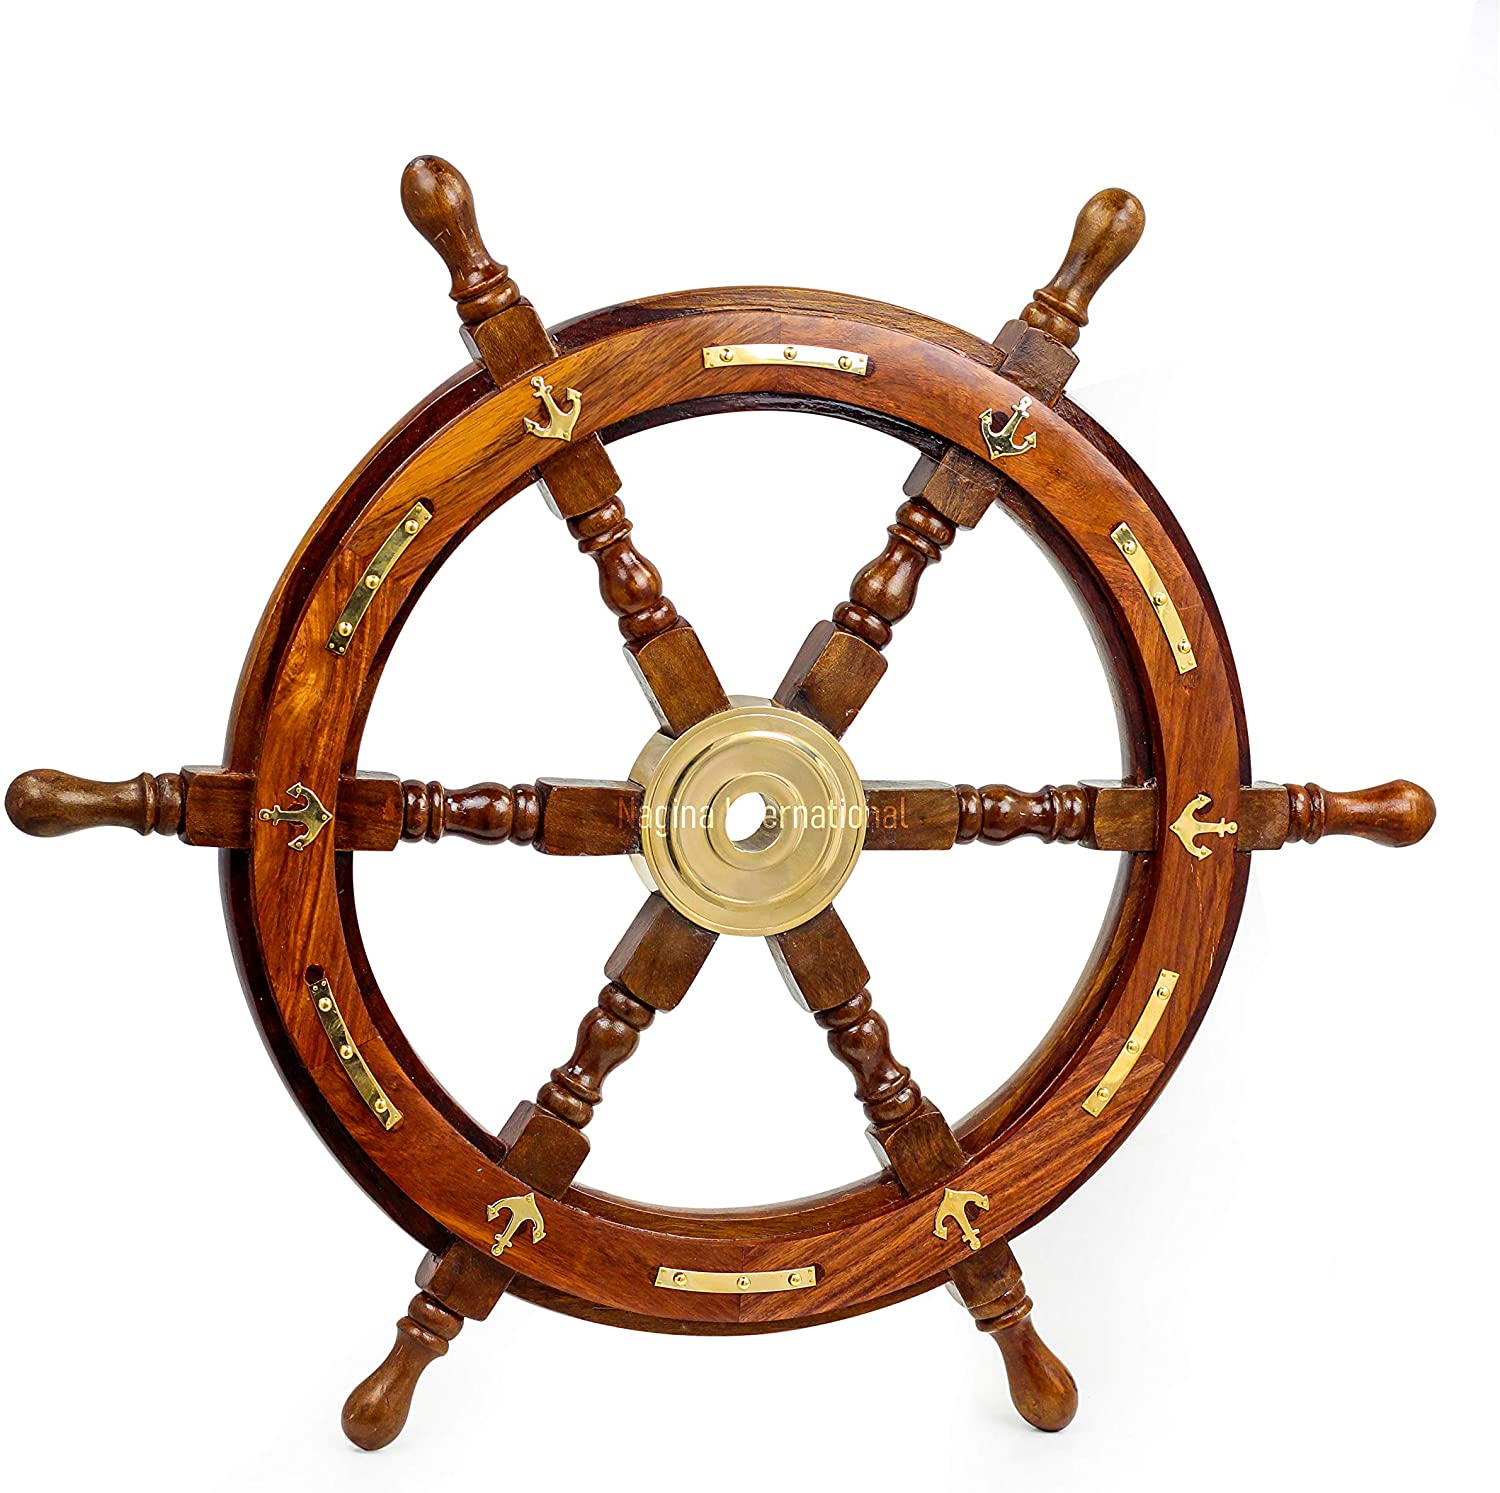 Nagina International Nautical Premium Sailor's Hand Crafted Brass & Wooden Ship Wheel   Luxury Gift Decor   Boat Collectibles (24 Inches, Anchor & Strip)